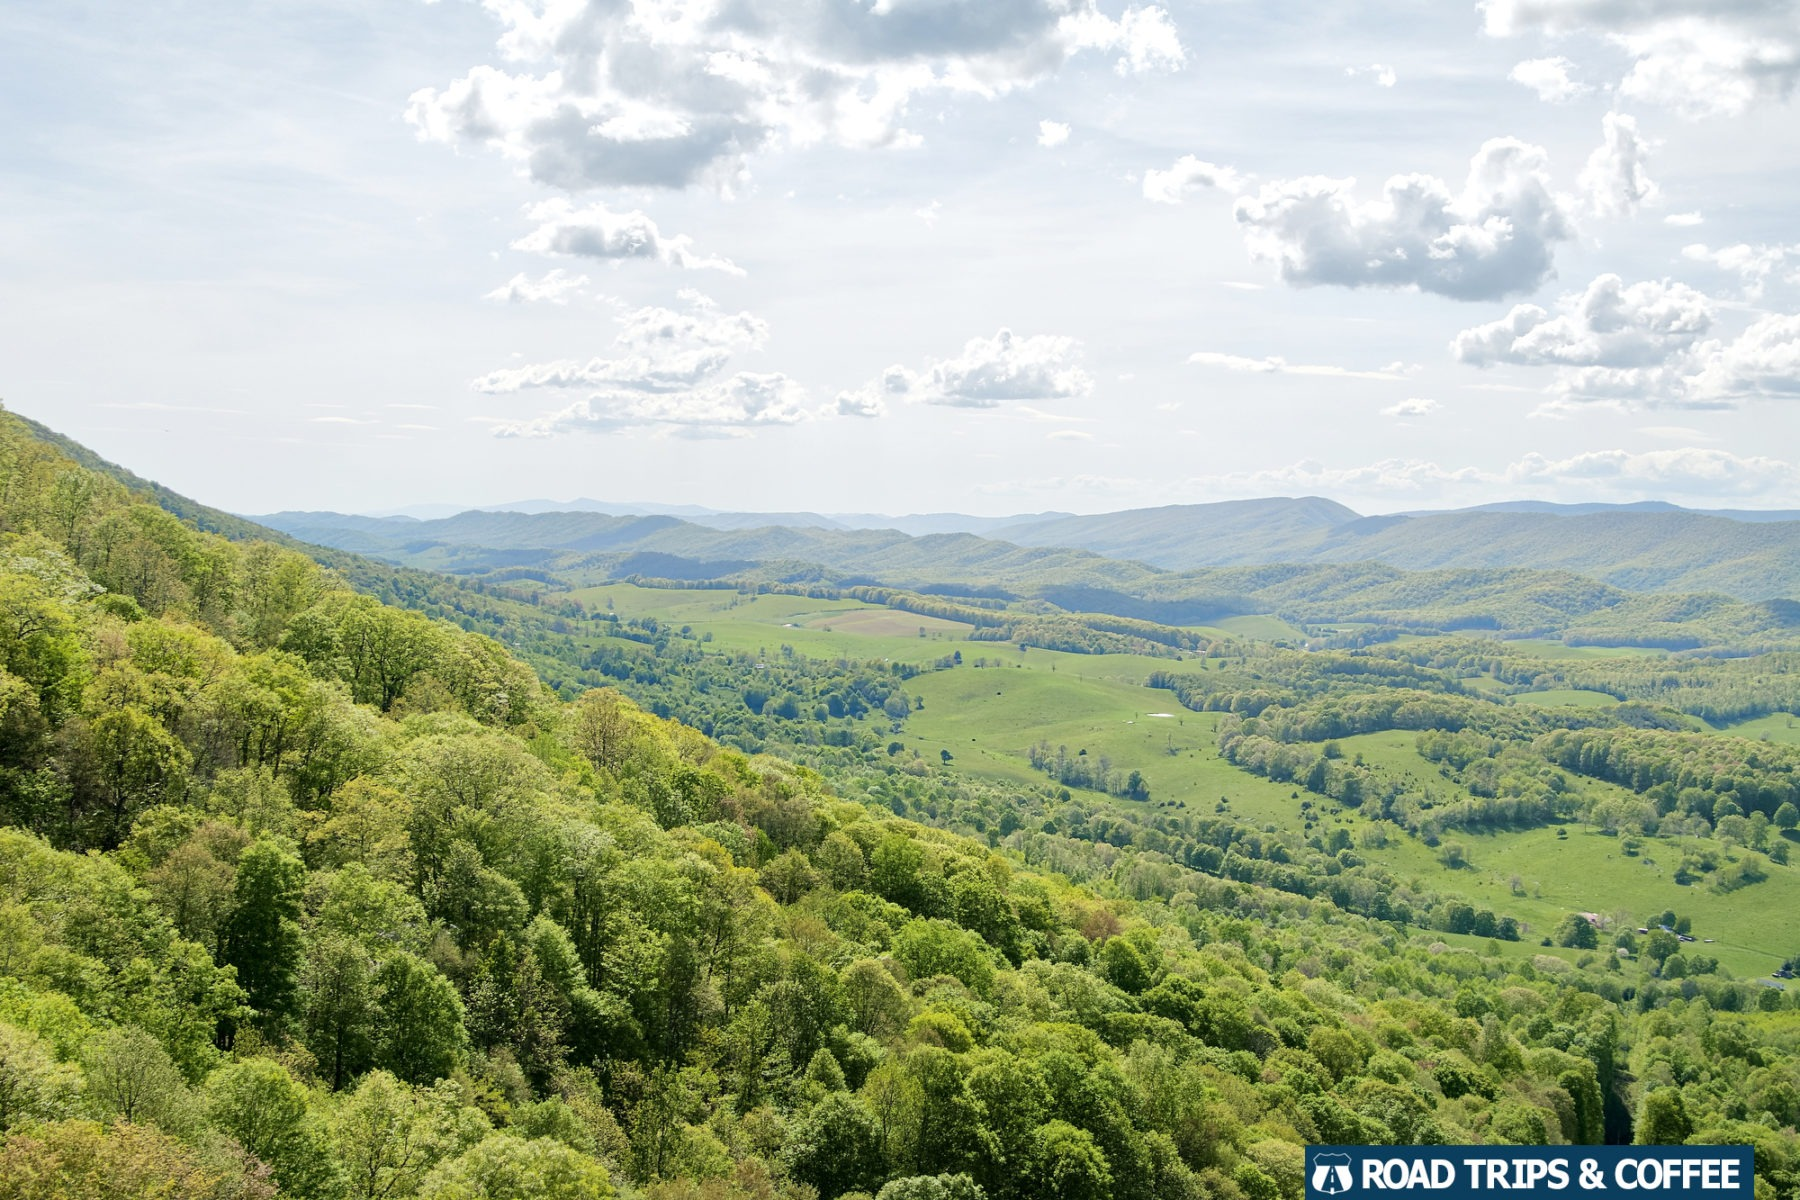 View of the nearby valley and mountains from the top of the Big Walker Lookout in Wytheville, Virginia